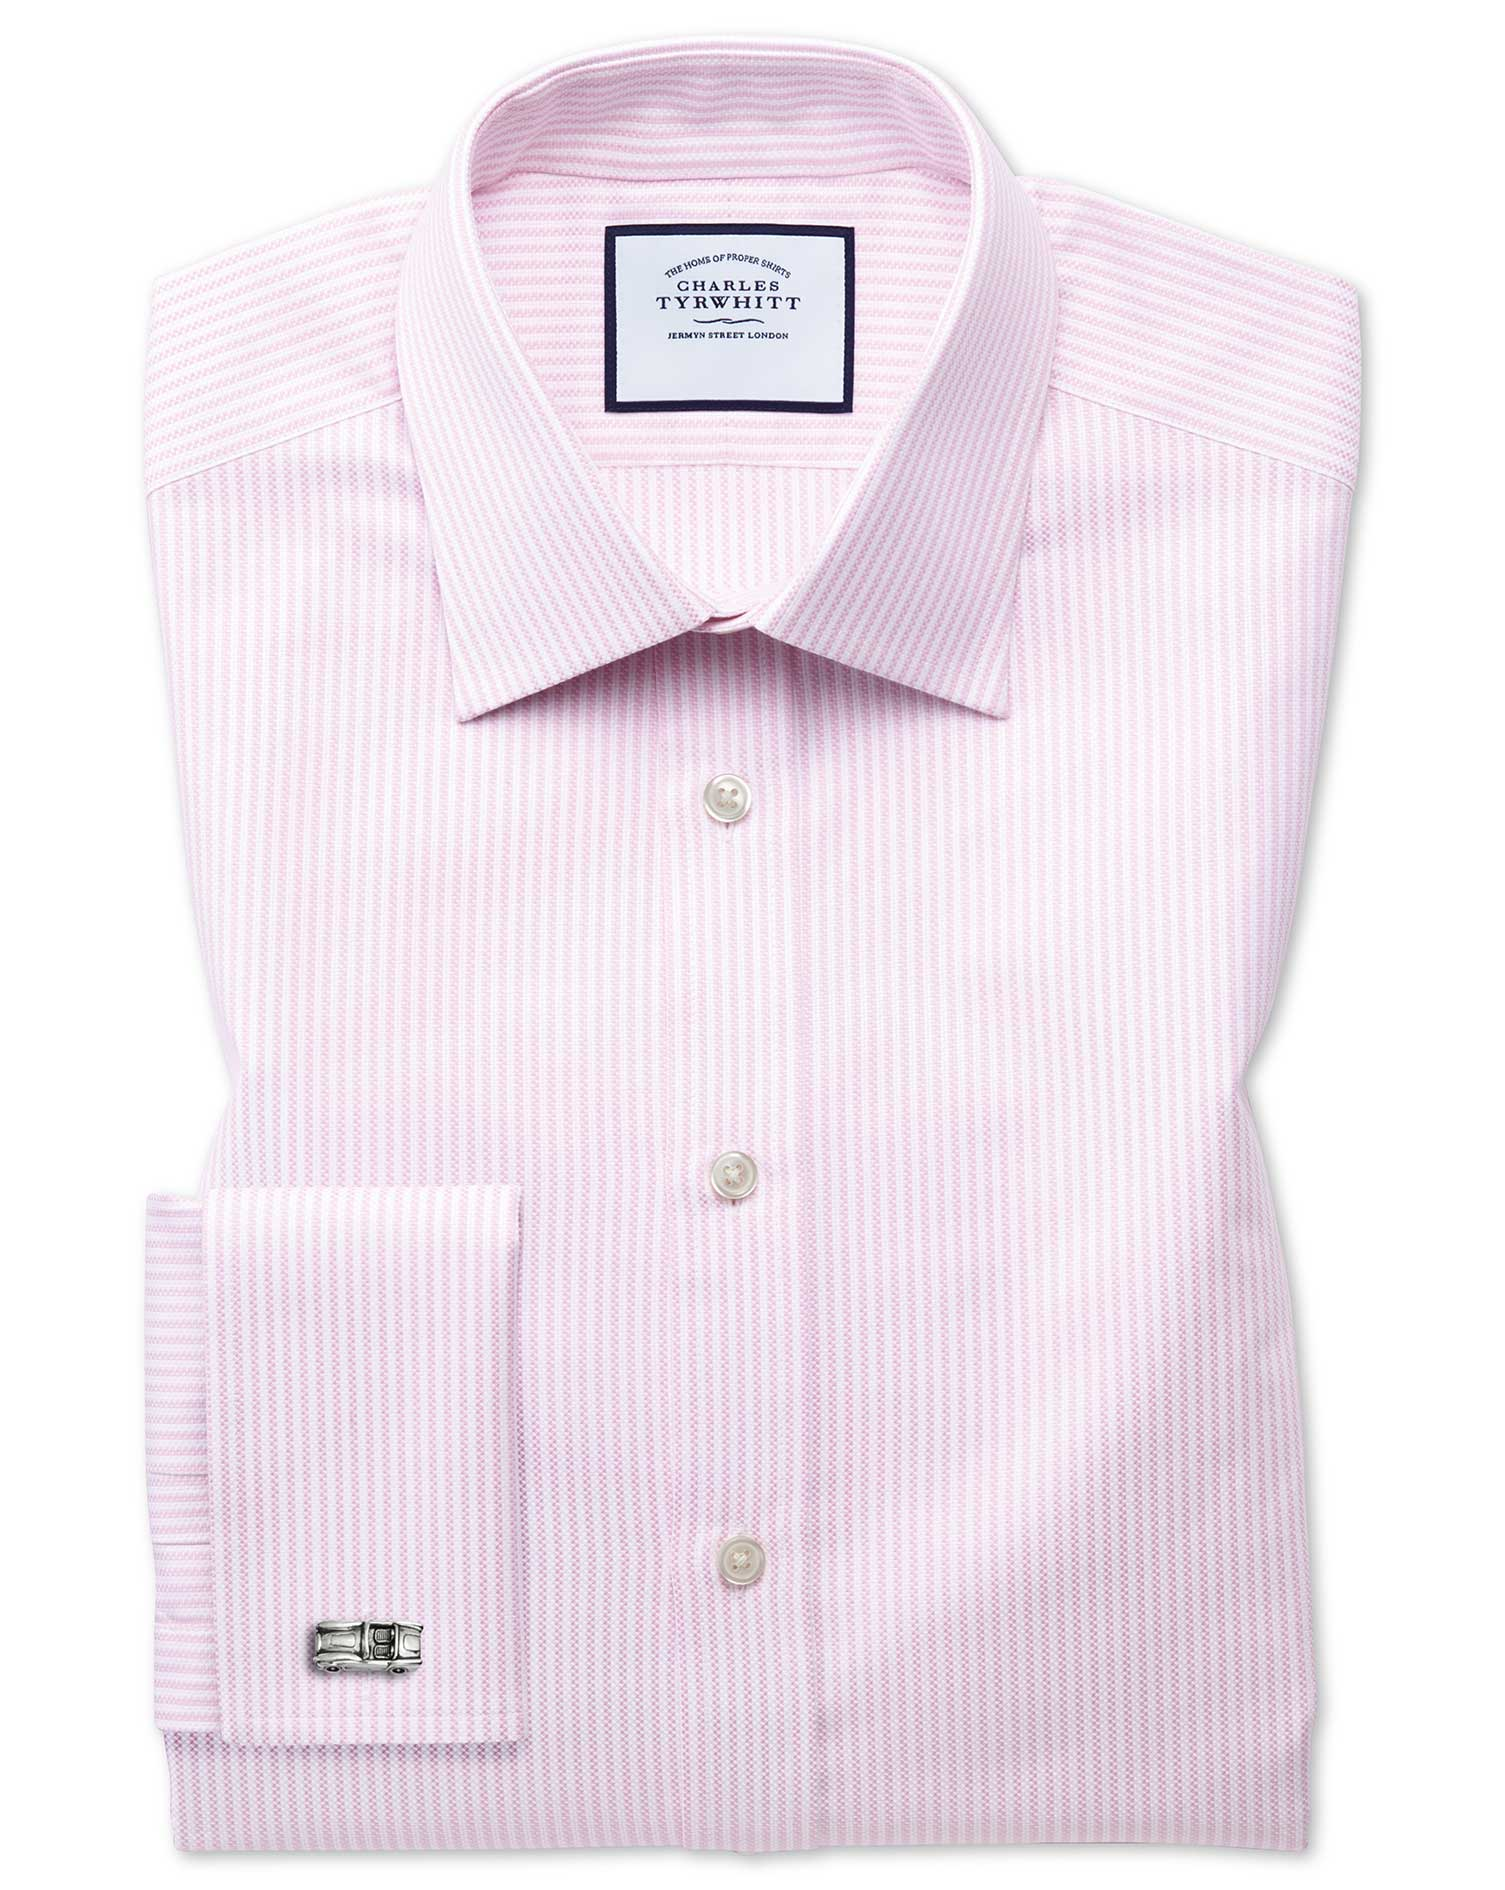 Extra Slim Fit Egyptian Cotton Royal Oxford Pink and White Stripe Formal Shirt Double Cuff Size 17.5